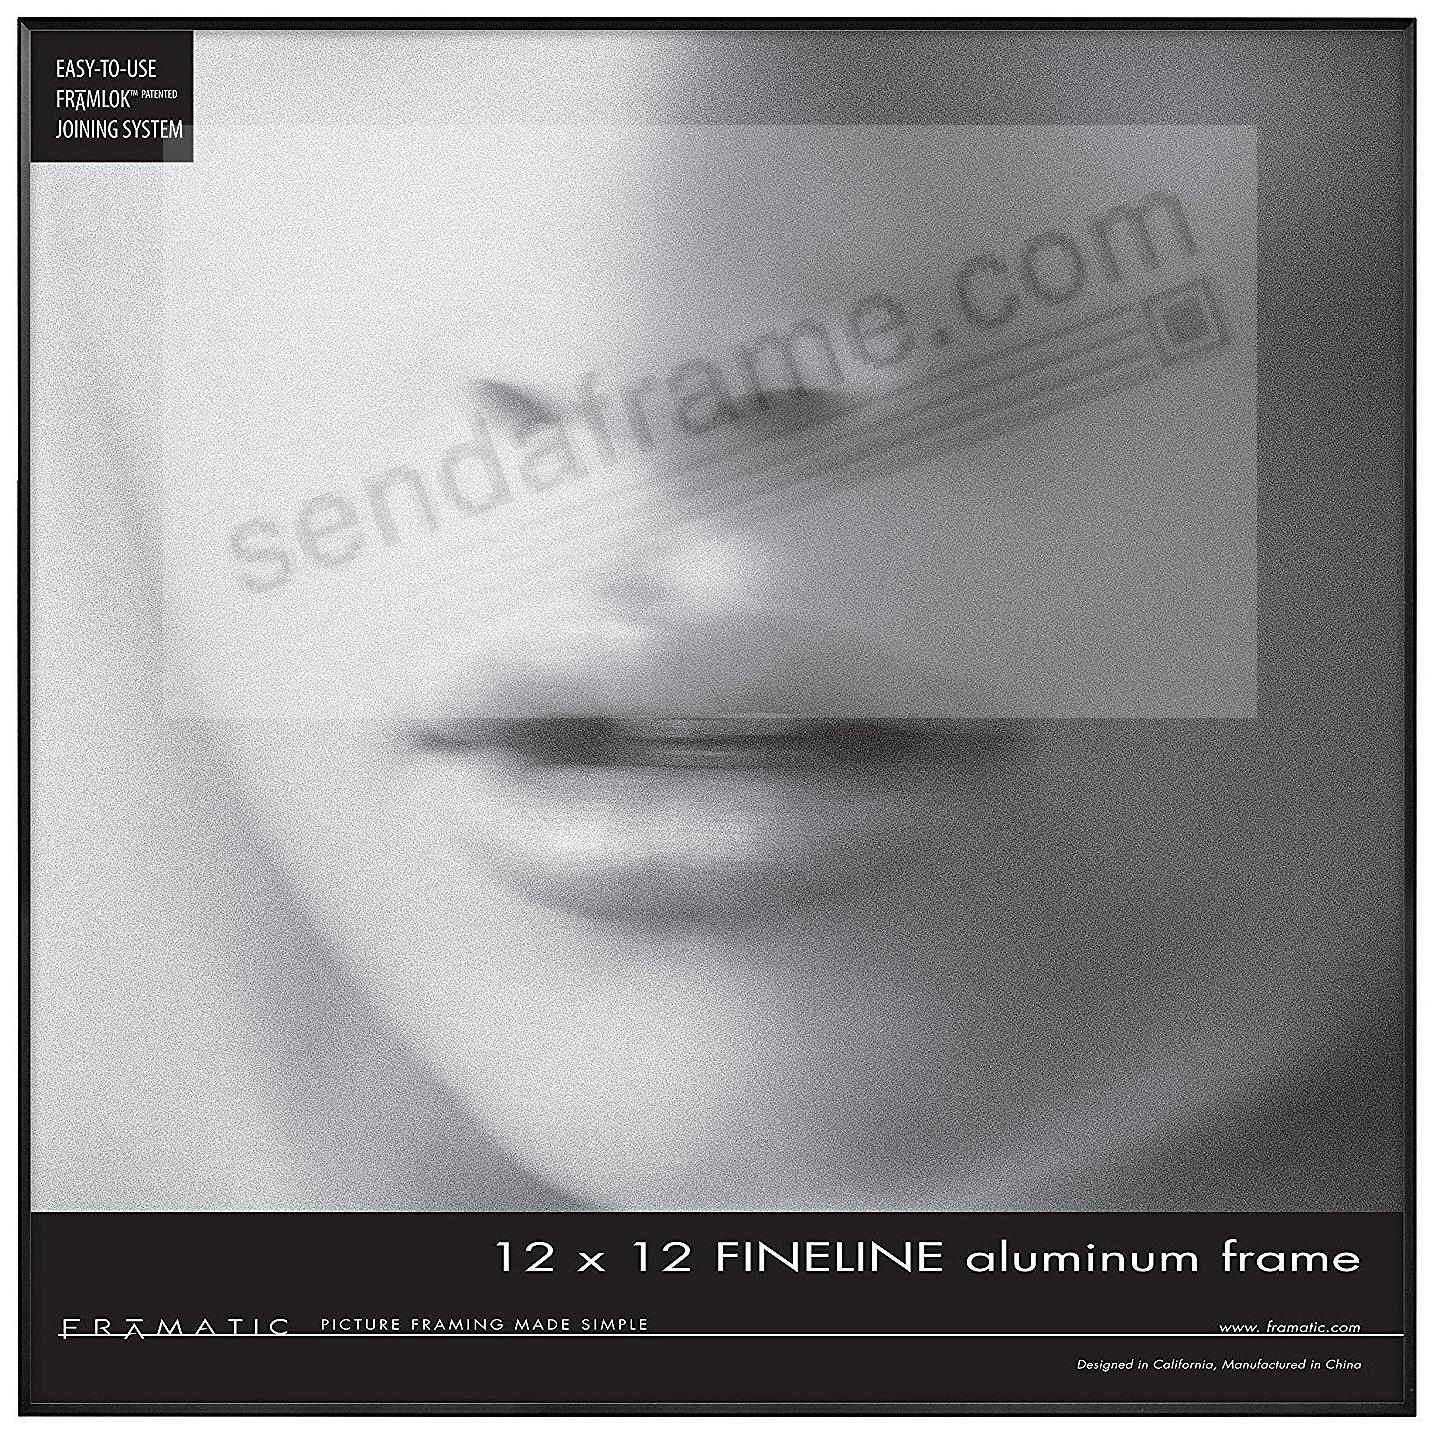 FINE LINE Black Aluminum 12x12 by Framatic®